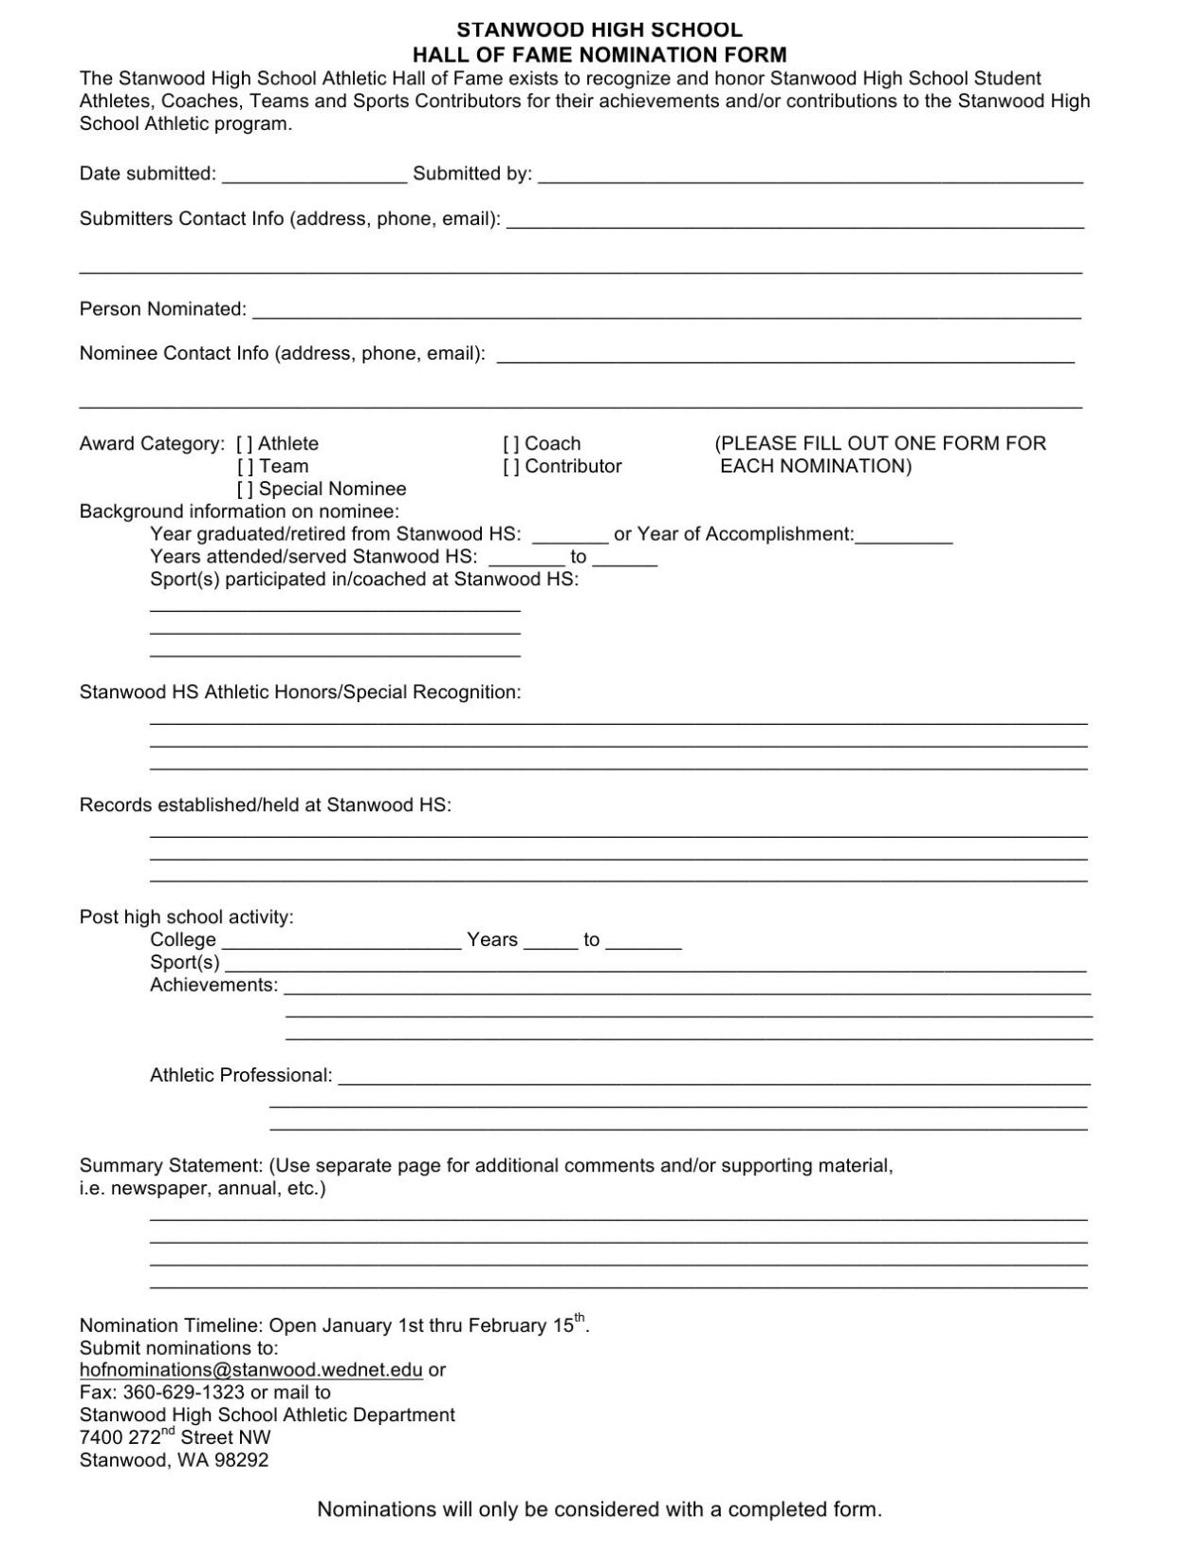 STANWOOD HIGH SCHOOL HALL OF FAME NOMINATION FORM